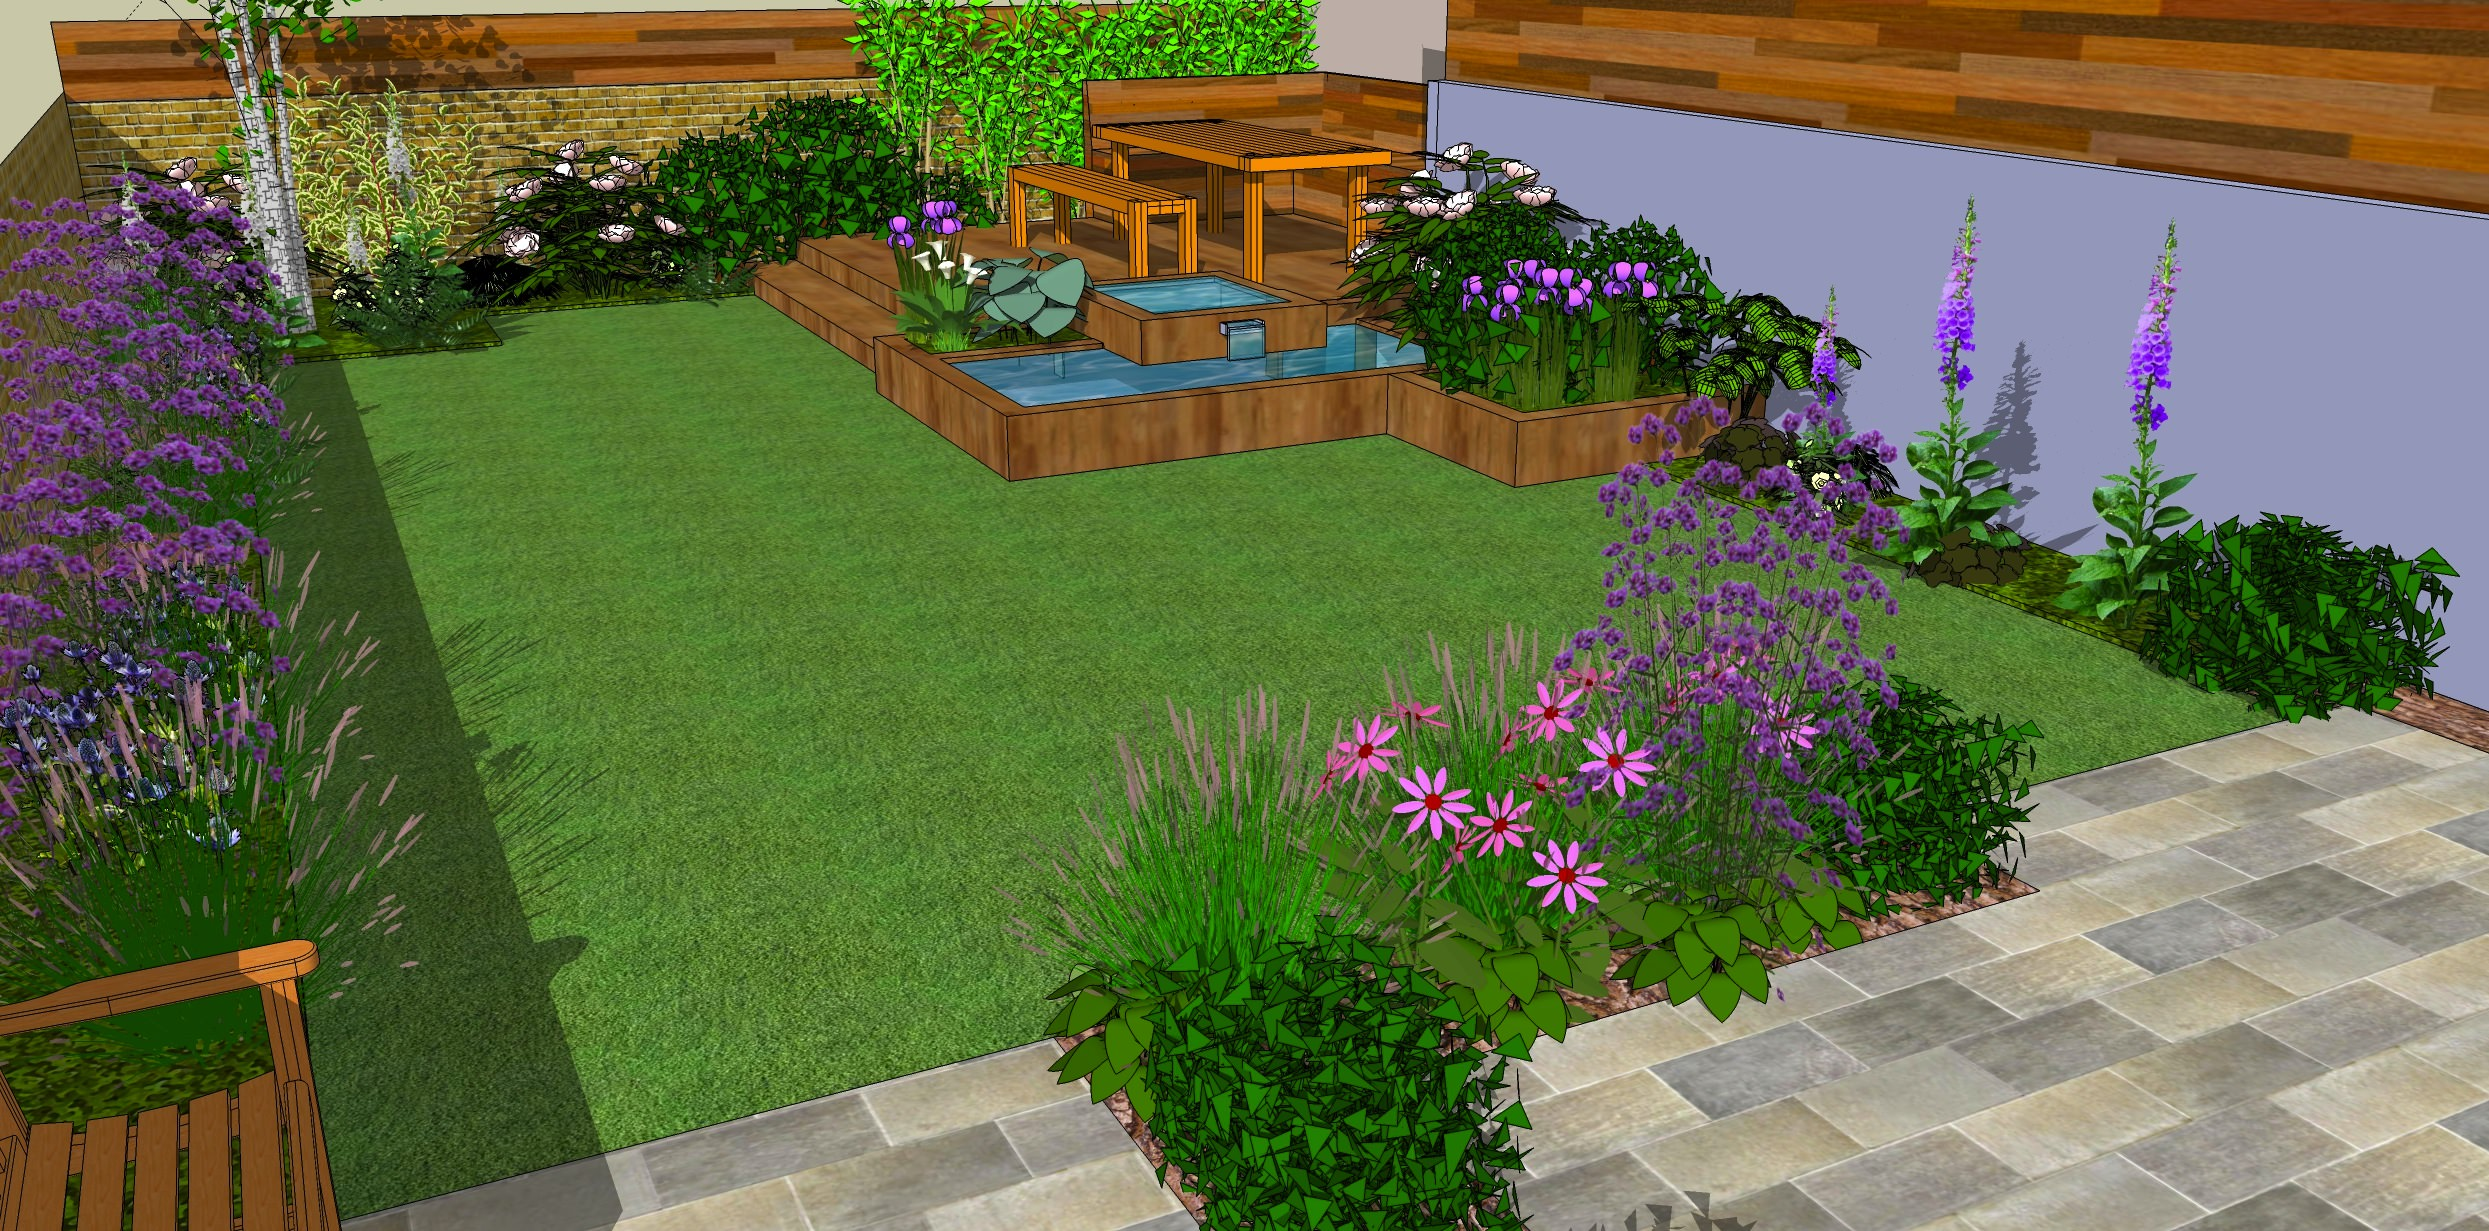 Low maintenance garden designs garden club london for Garden designs for small gardens uk